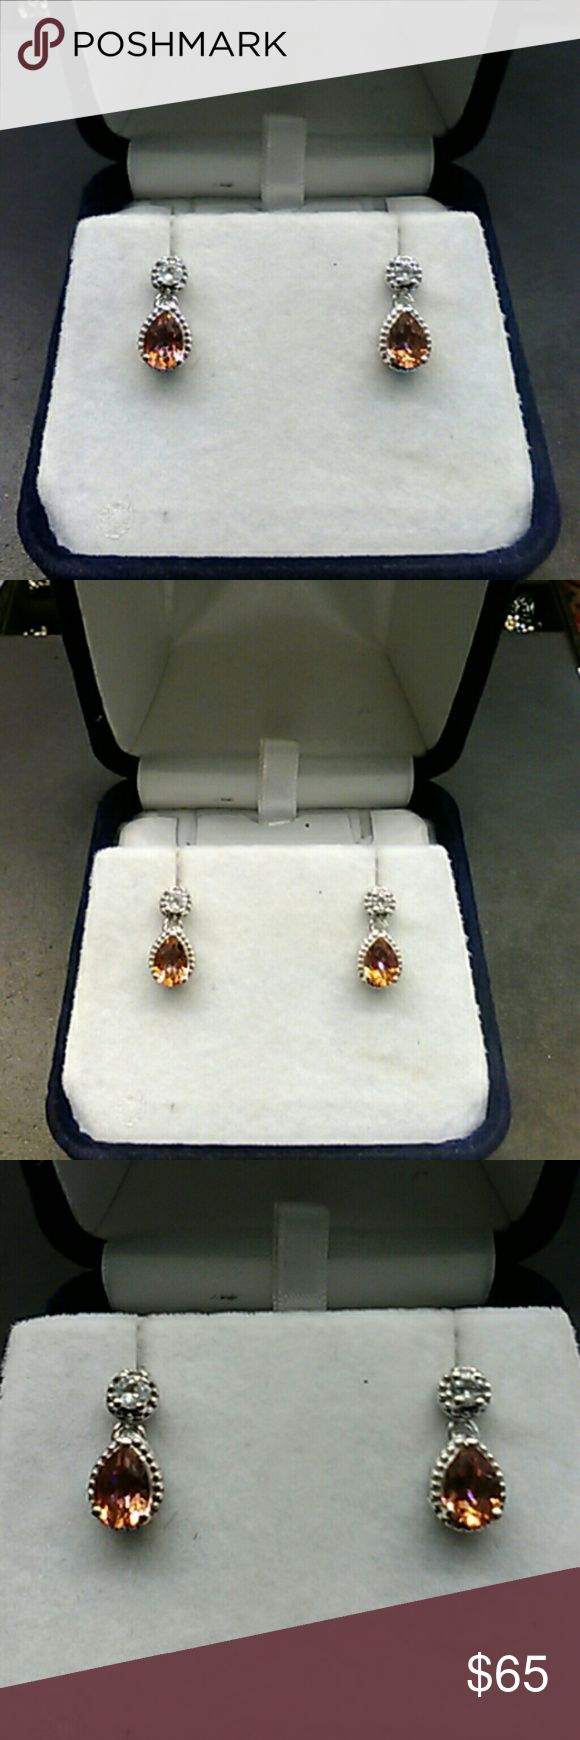 2.75cts Genuine Mystic Topaz & White Topaz 925 Beautiful mystic topaz & white topaz teardrop earrings. Genuine 2.75 carats Mystic Topaz & White Topaz. Solid 925  sterling silver earrings. FLASH SALE $45 THIS WEEKEND Estate piece. Never worn, comes in a gift box. estate 925 Jewelry Earrings